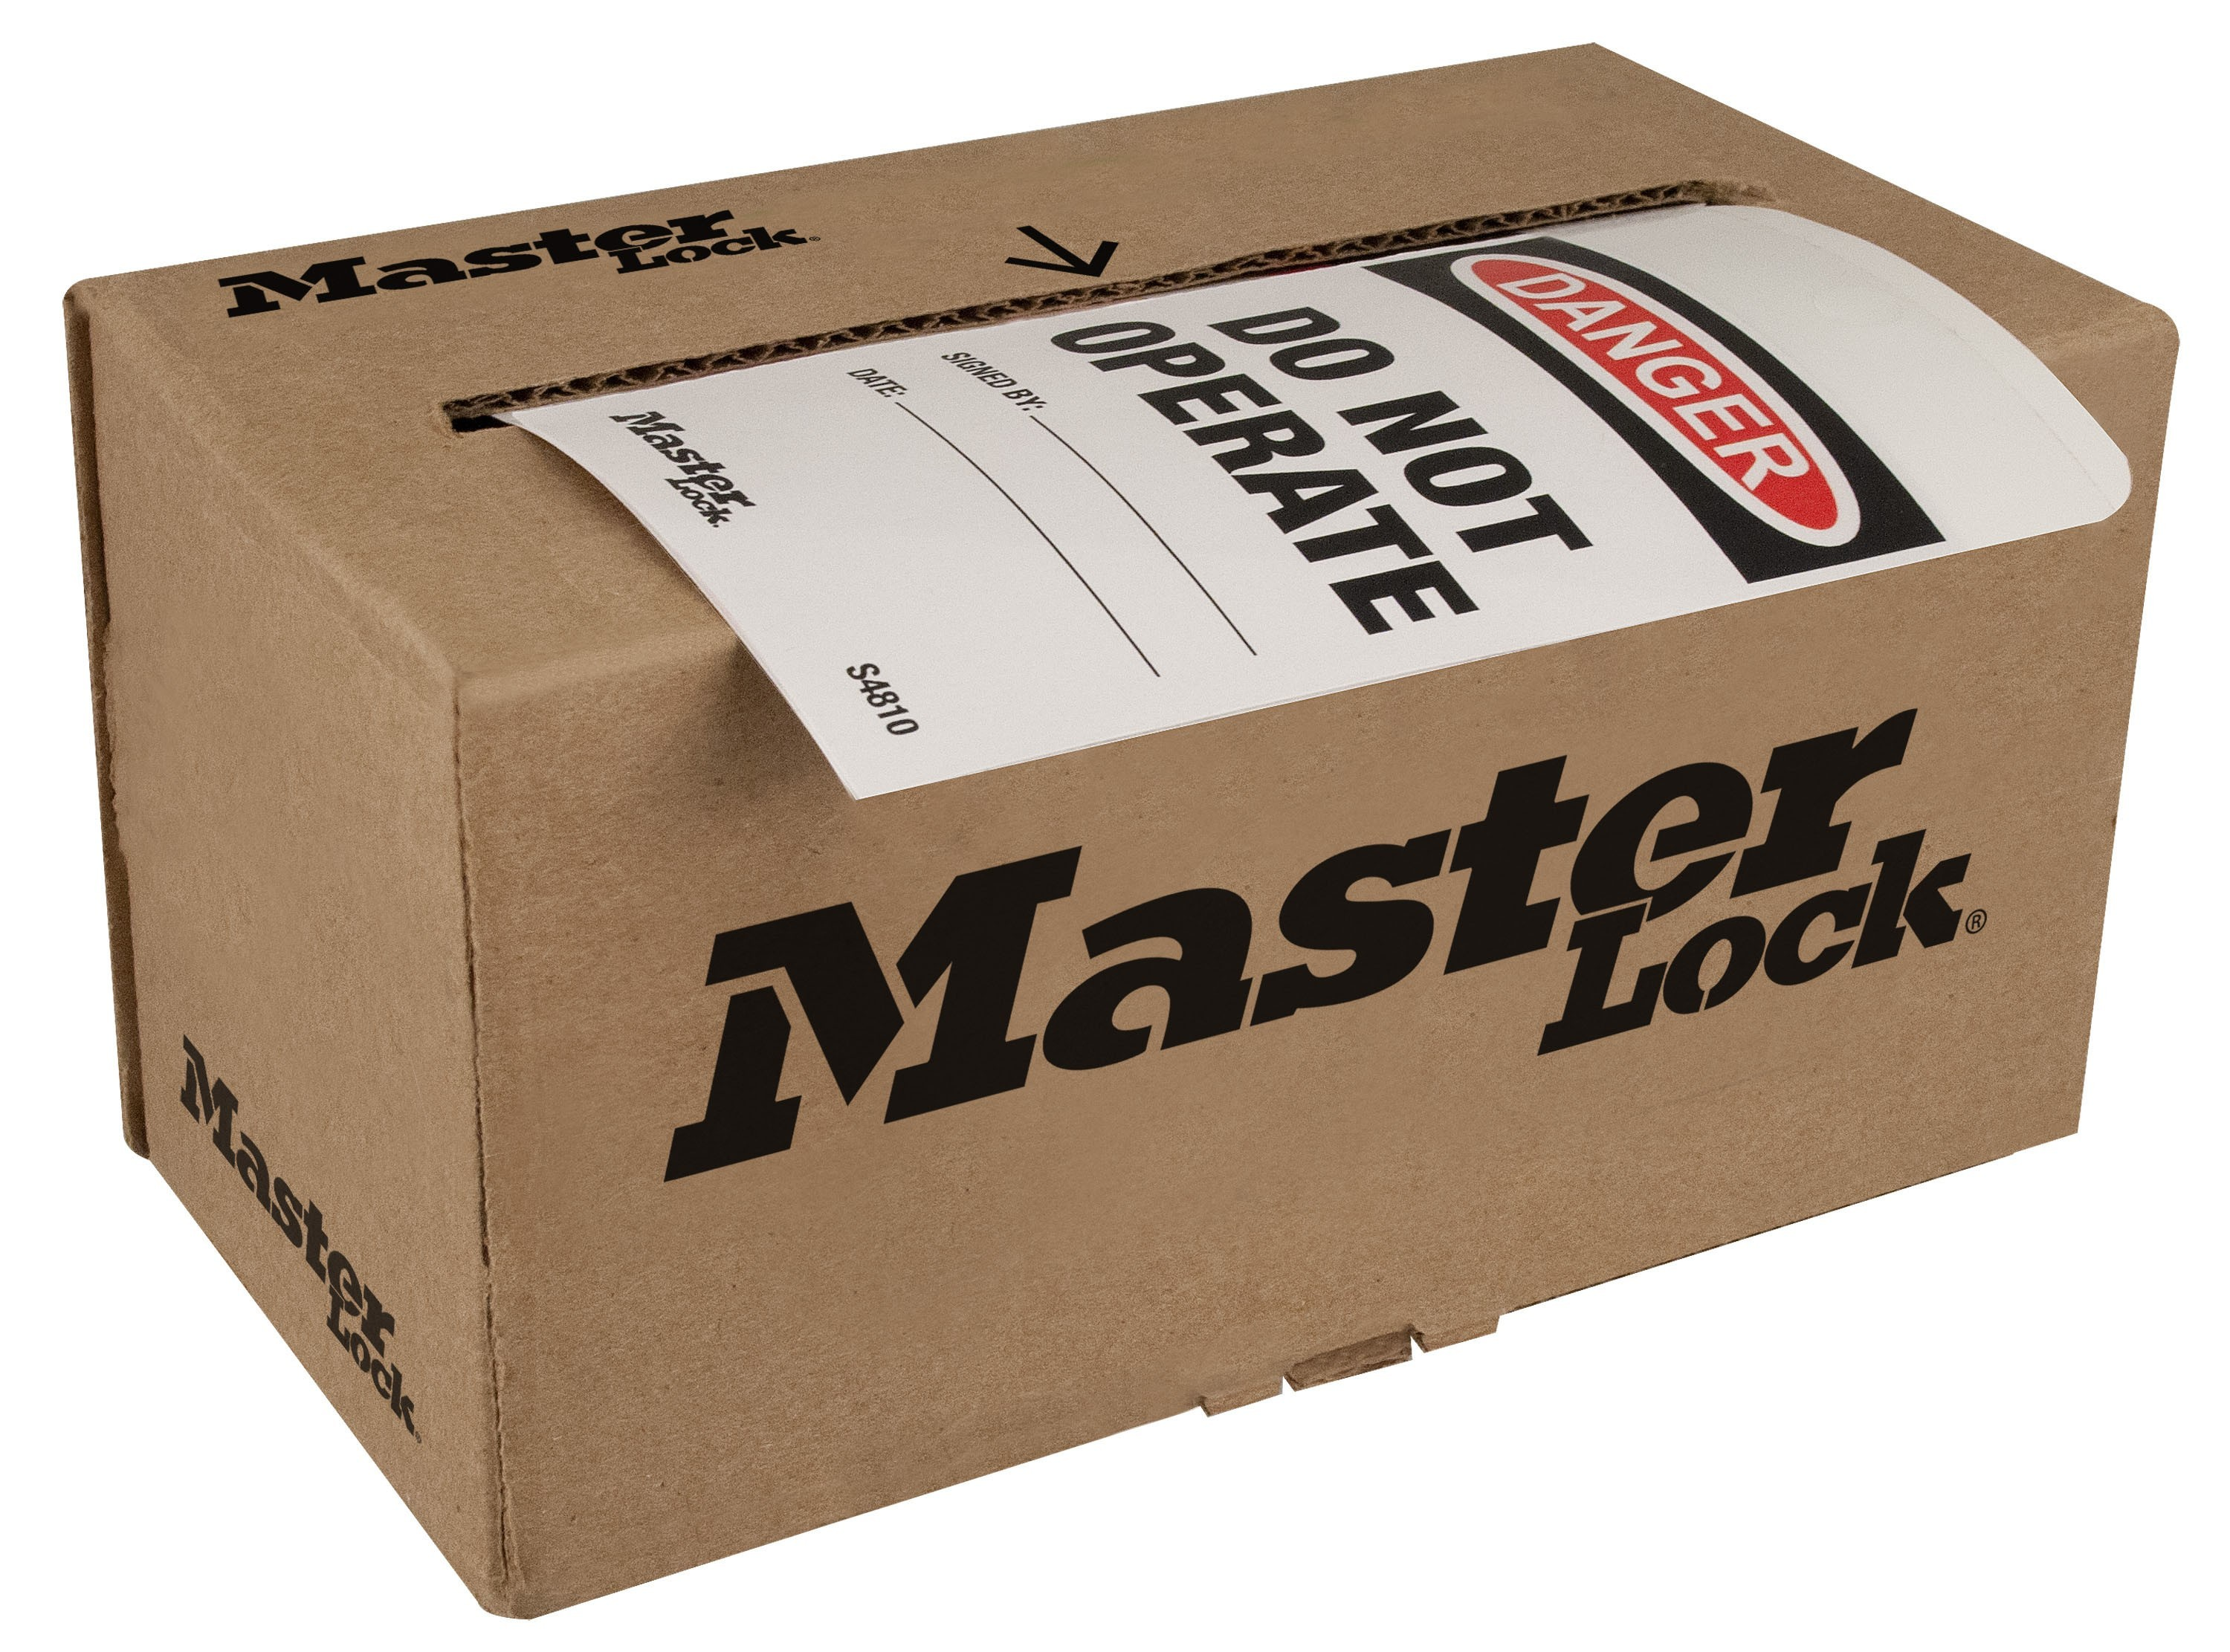 Master Lock Box Of 100 Rolled Tags Lockout Safety Com